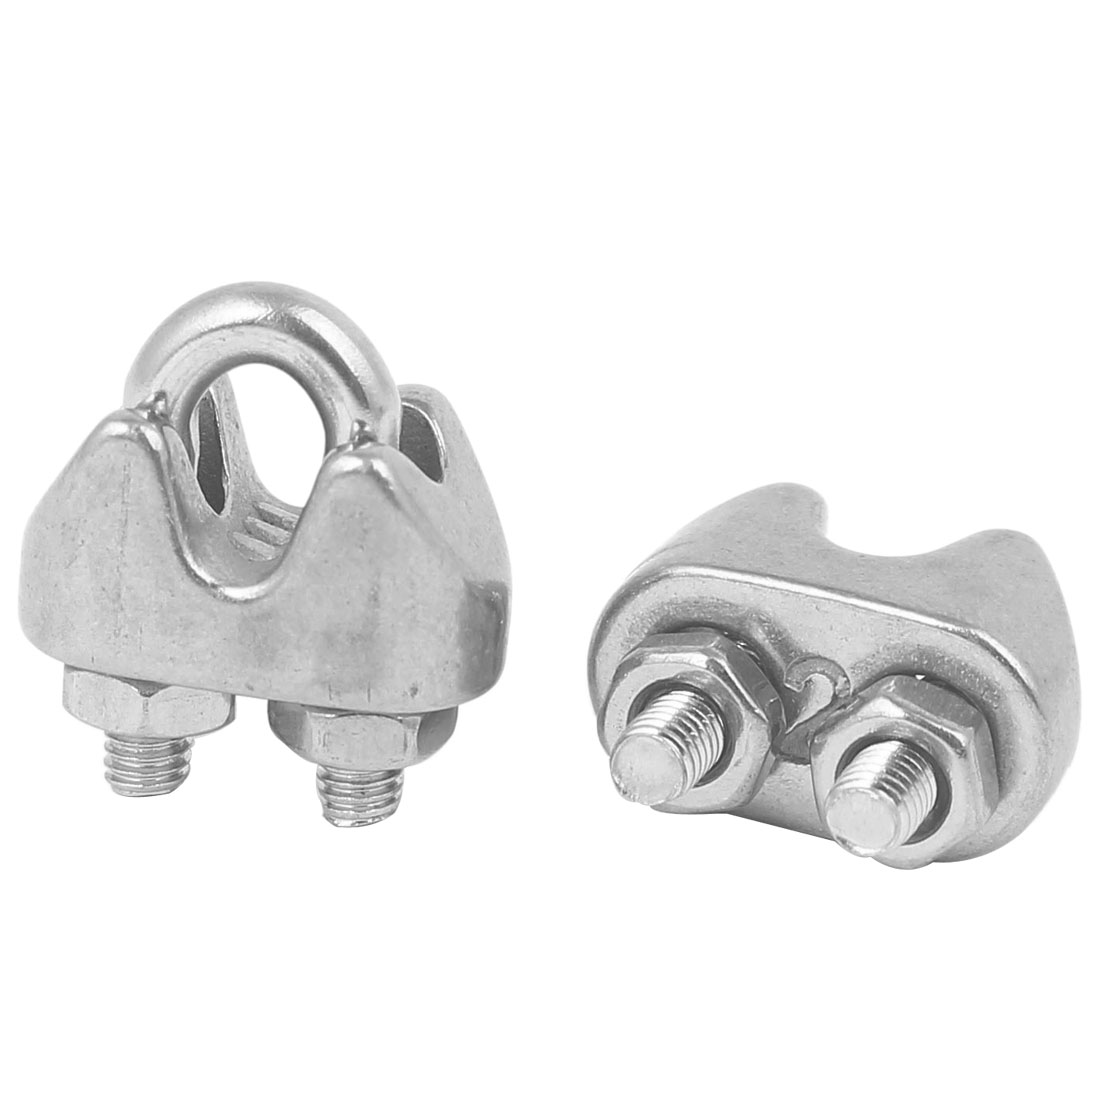 hight resolution of uxcell 2pcs m2 3mm 0 12 u shape bolt saddle clamp 304 stainless steel cable